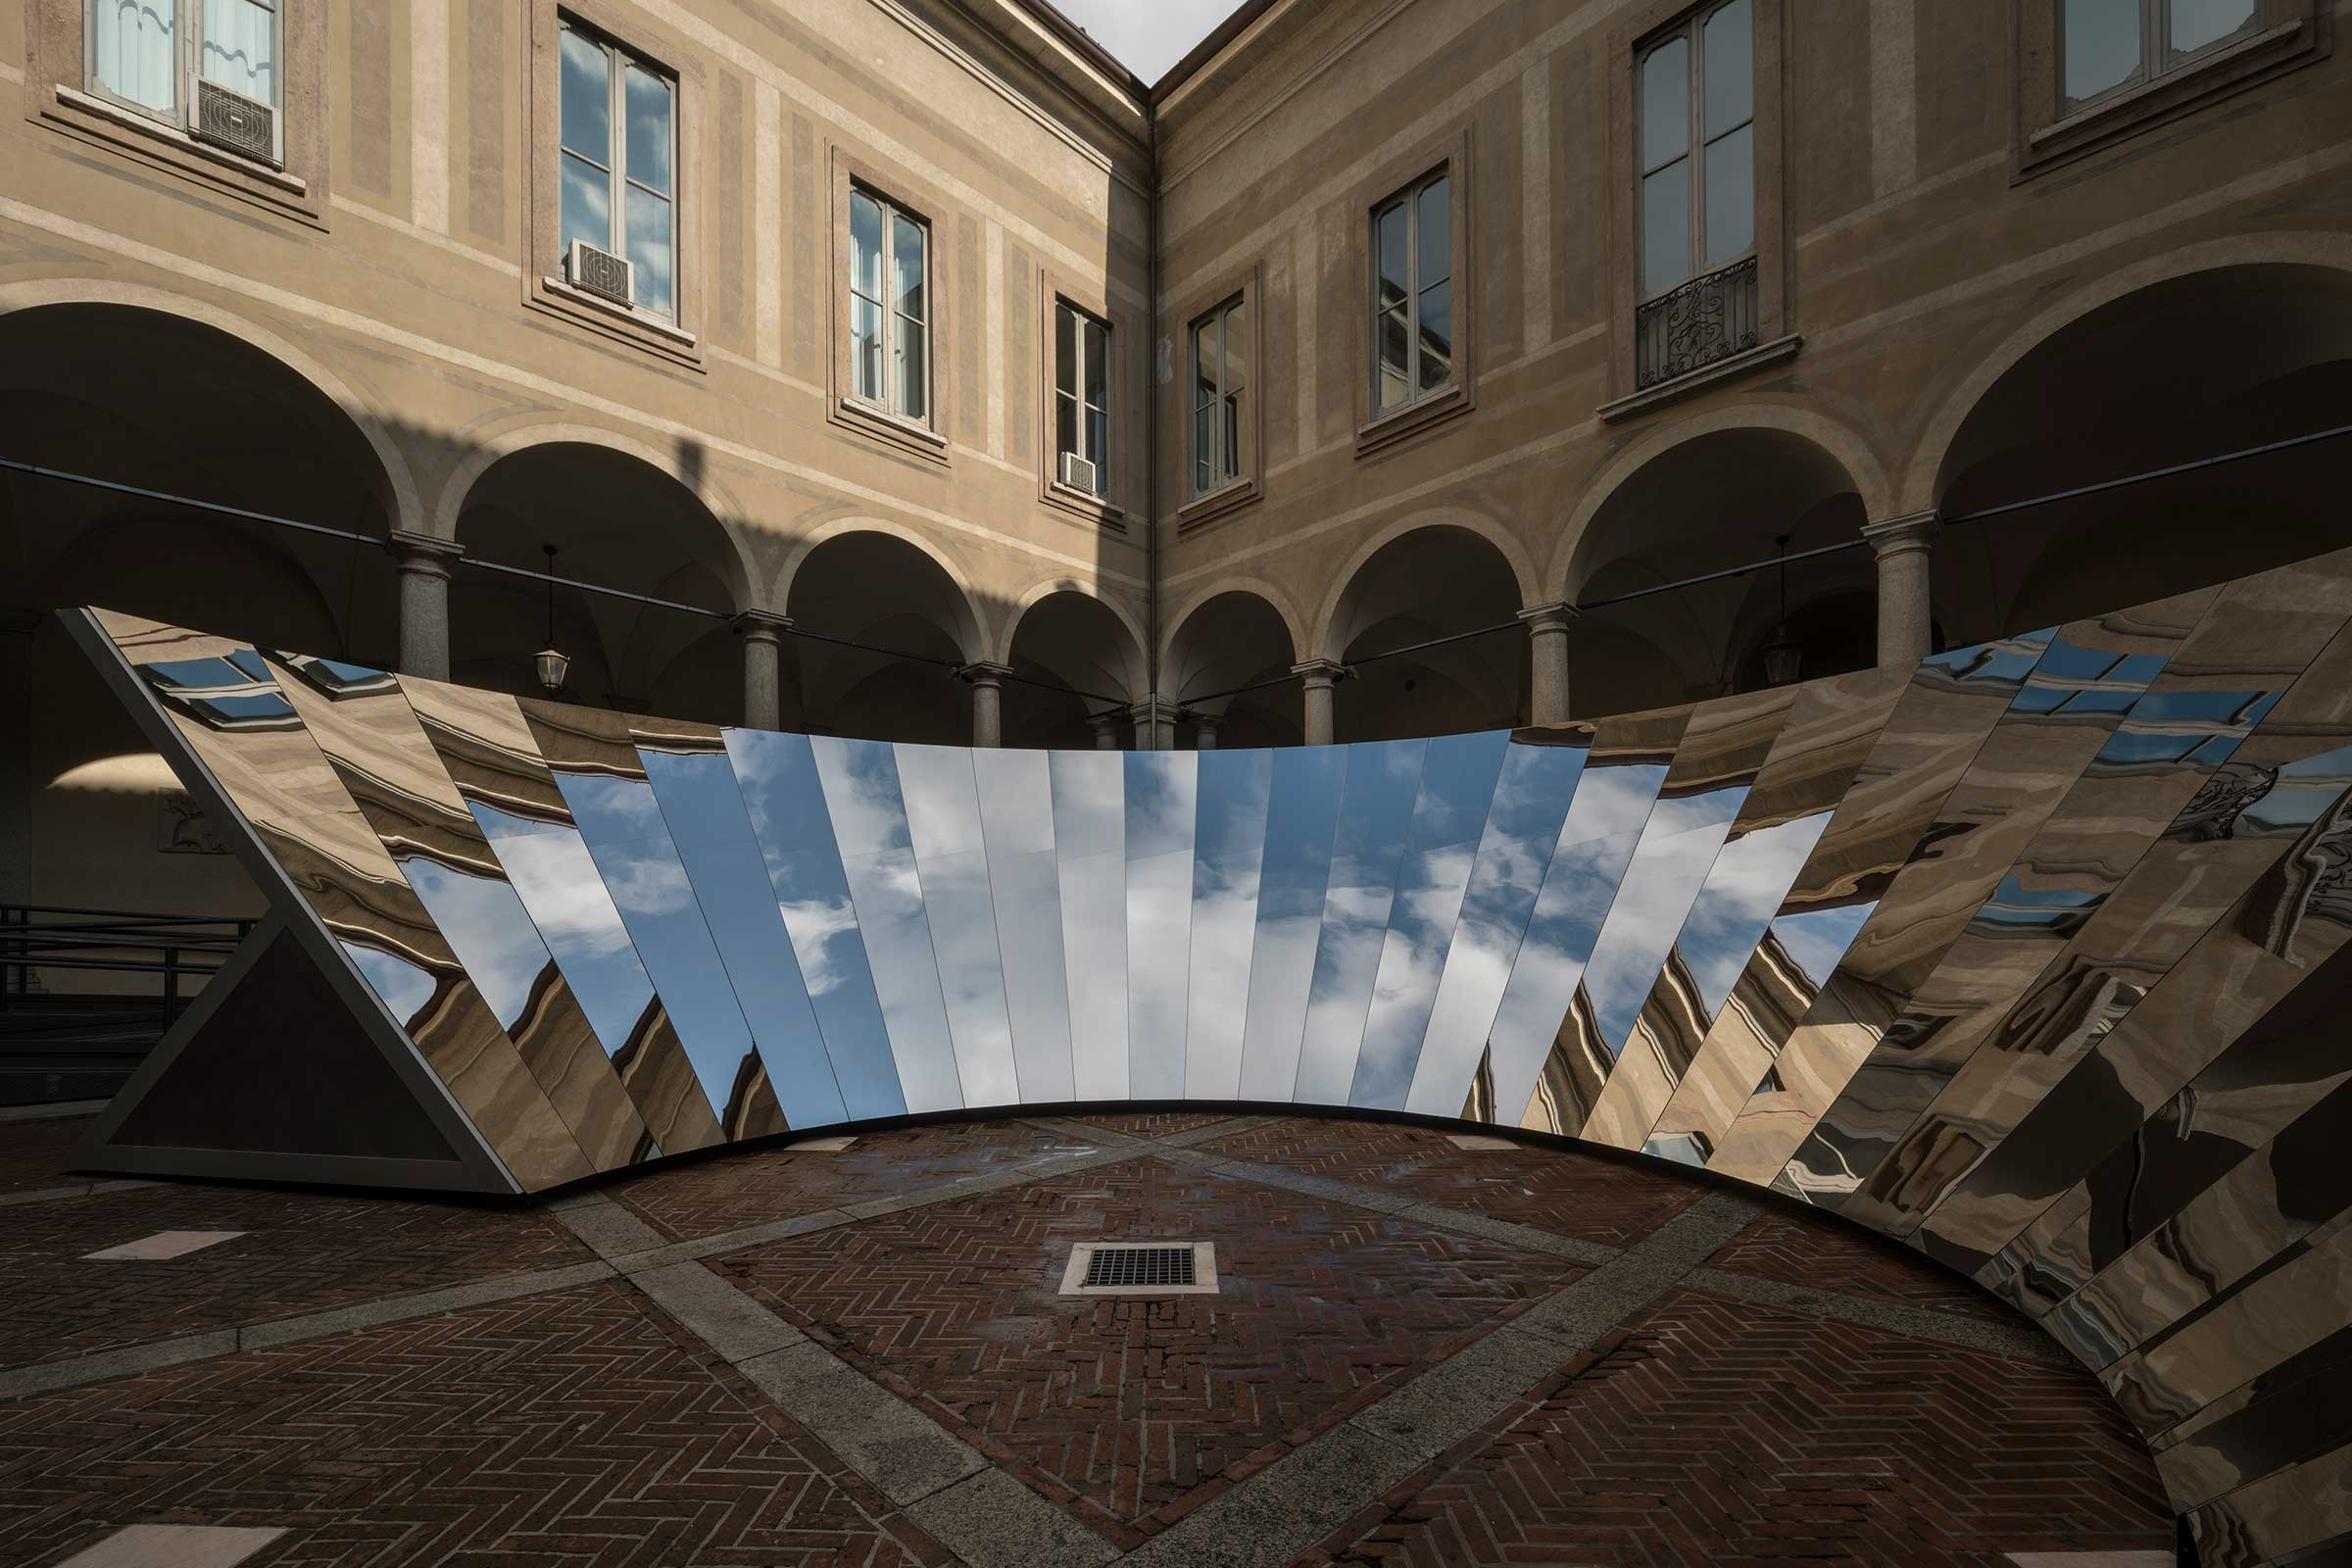 Open sky installation cos x salone del mobile 2018 for Salone del mobile 3018